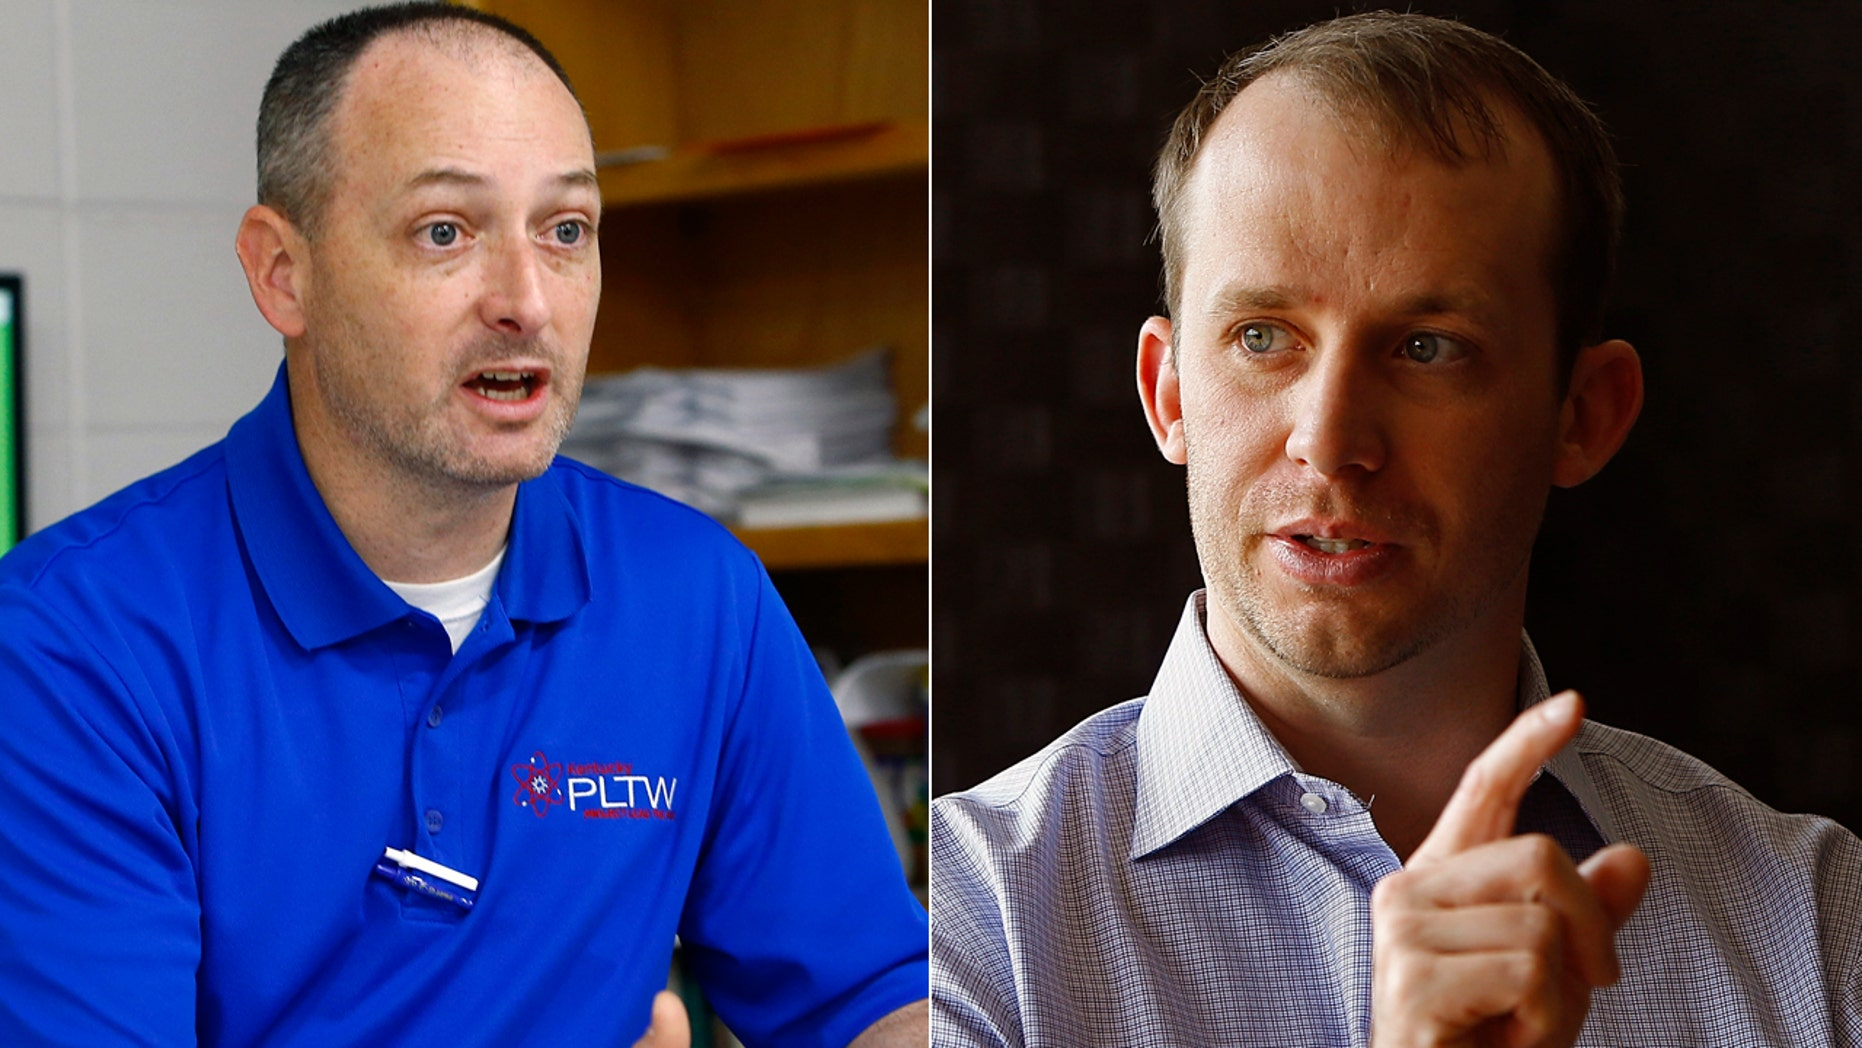 Travis Brenda, left, defeated Kentucky House Majority Leader Jonathan Shell in Tuesday's primary election.